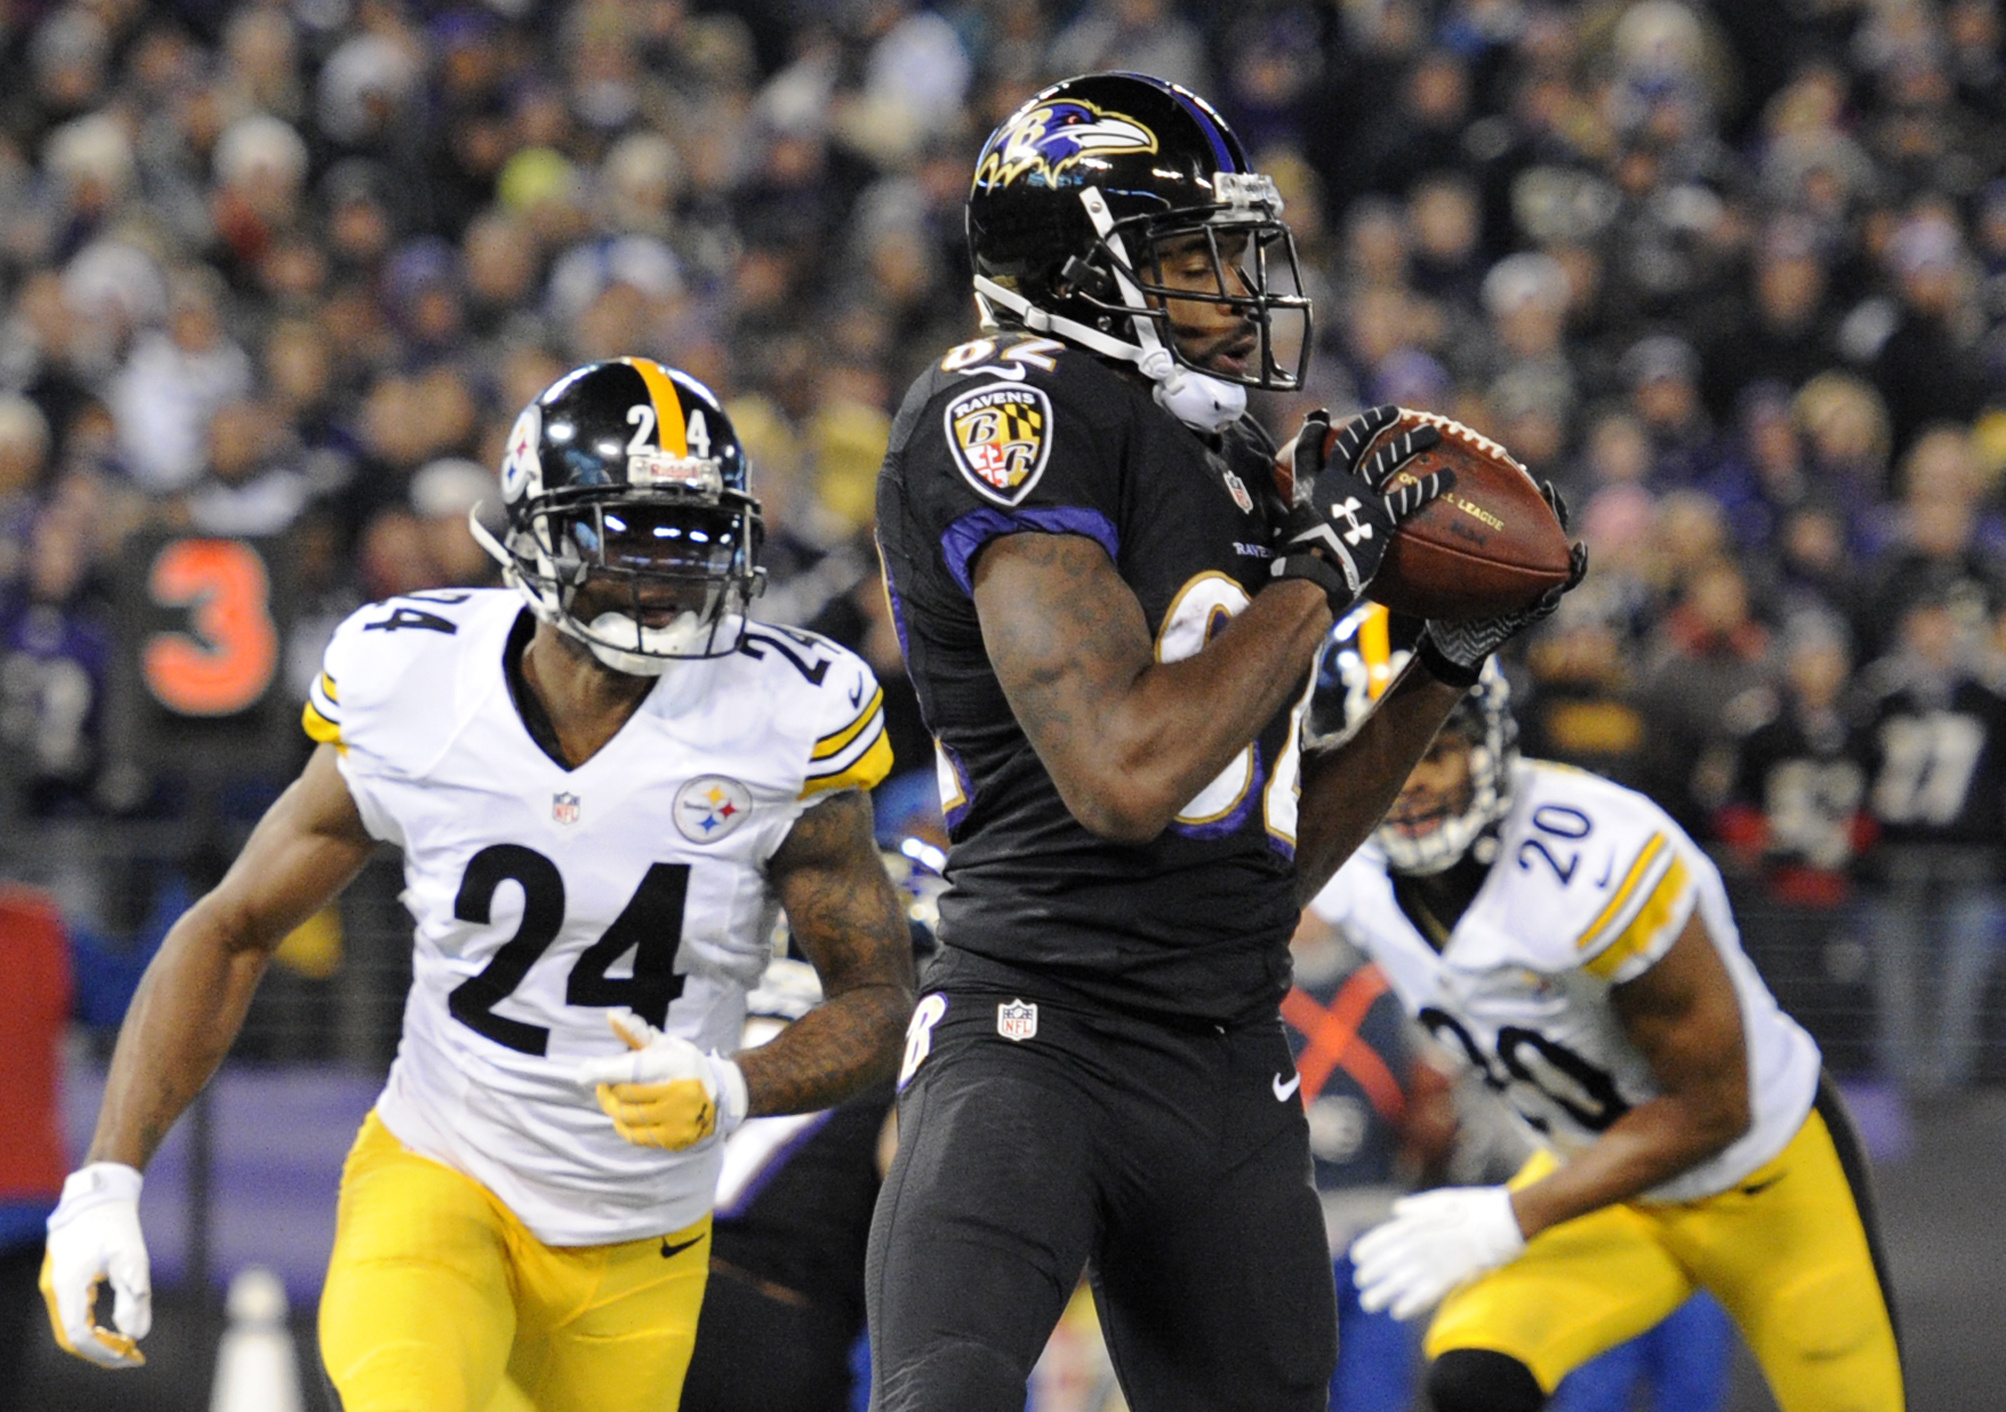 Baltimore Ravens wide receiver Torrey Smith, center, makes a touchdown catch in front of Pittsburgh Steelers cornerback Ike Taylor (24) and strong safety Will Allen in the first half of an NFL football game on Thursday, Nov. 28, 2013, in Baltimore